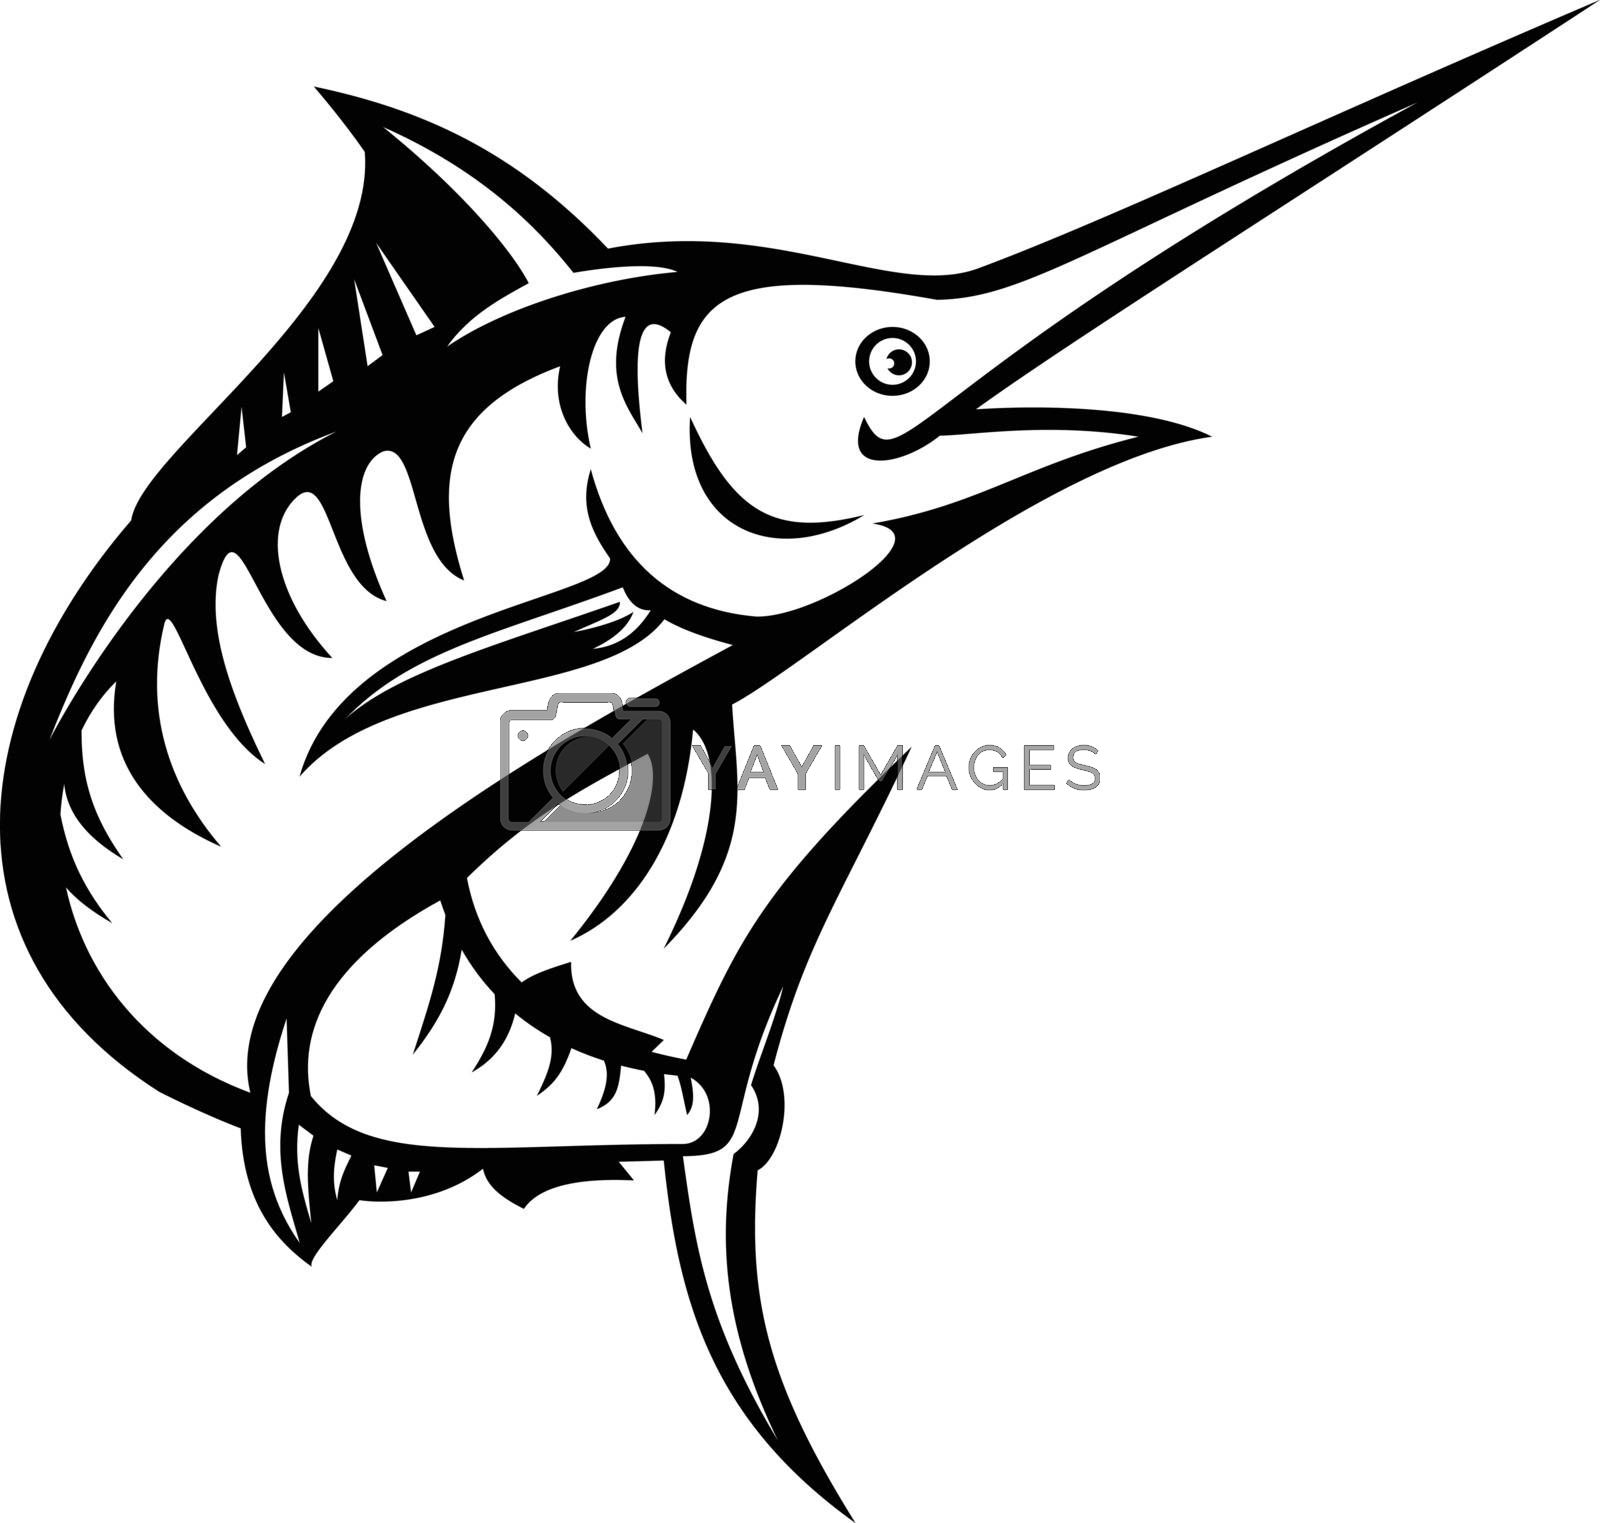 Retro style illustration of an Indo-Pacific blue marlin, a species of marlin or billfish swimming and jumping up done in black and white on isolated background in black and white stencil.